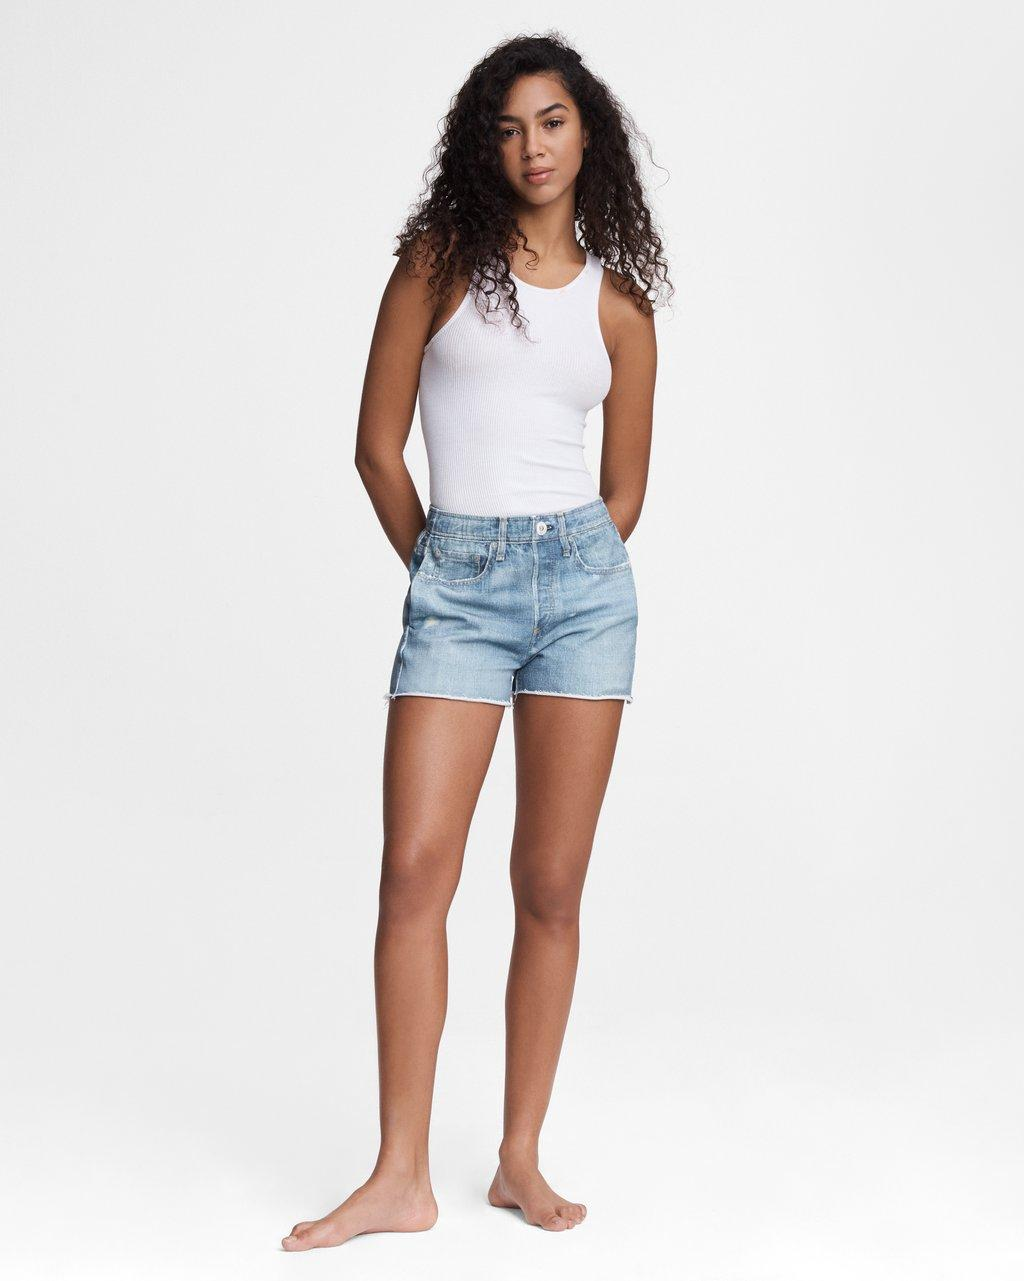 Miramar Cotton Short - Indigo Wash